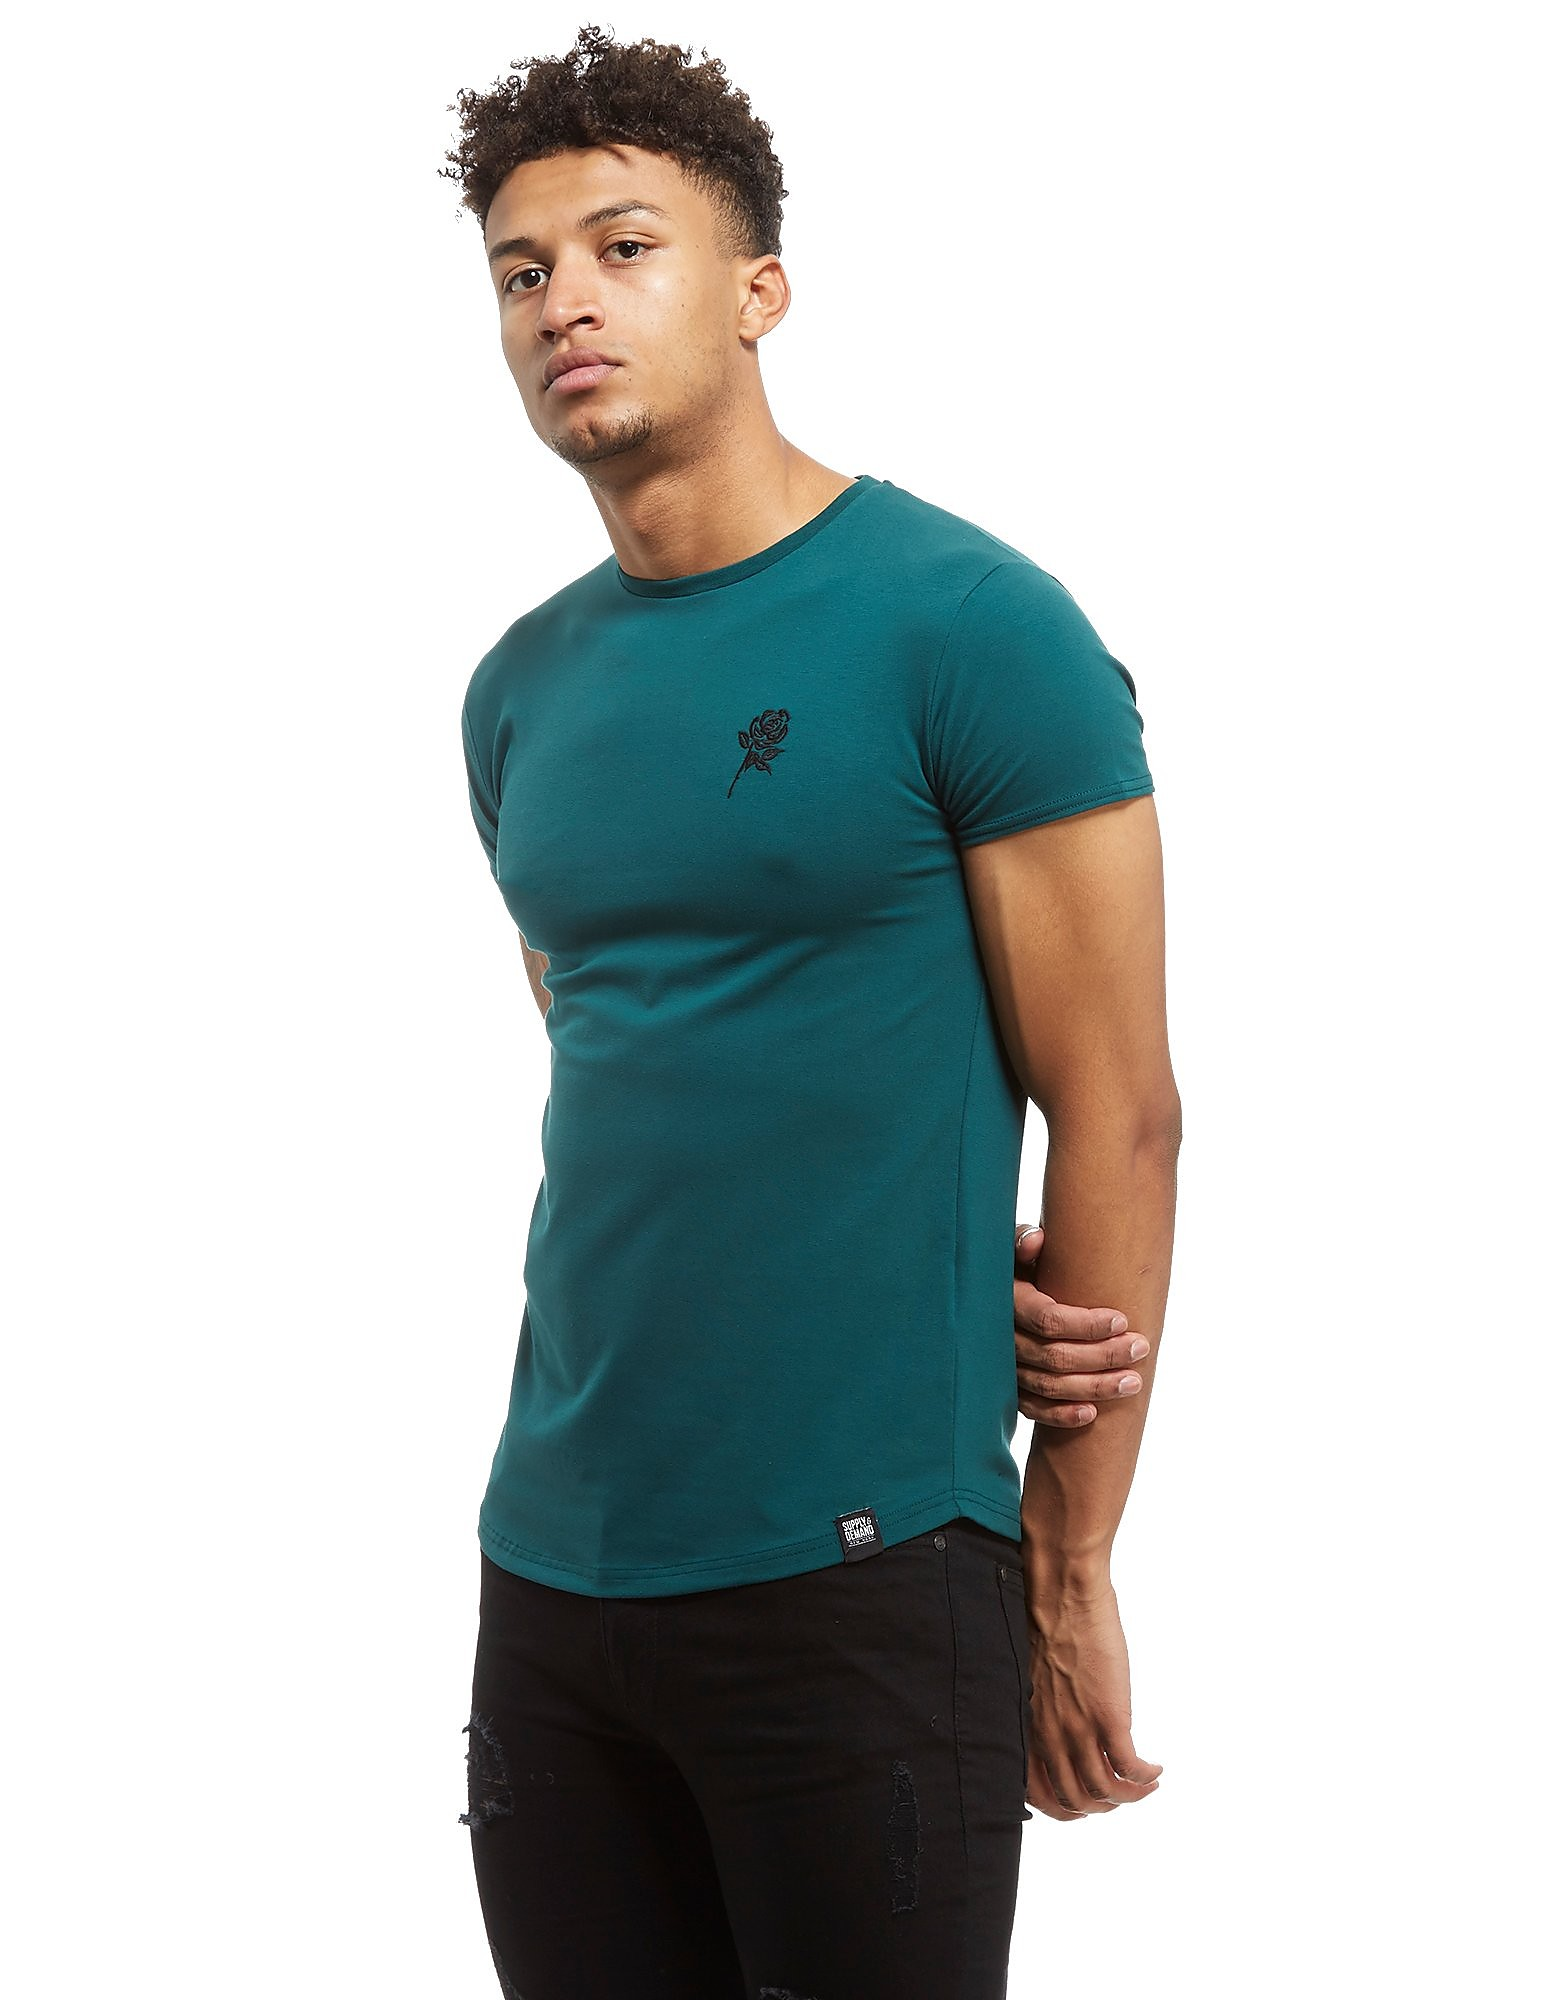 Supply & Demand Reps T-Shirt Aquamarin-Schwarz